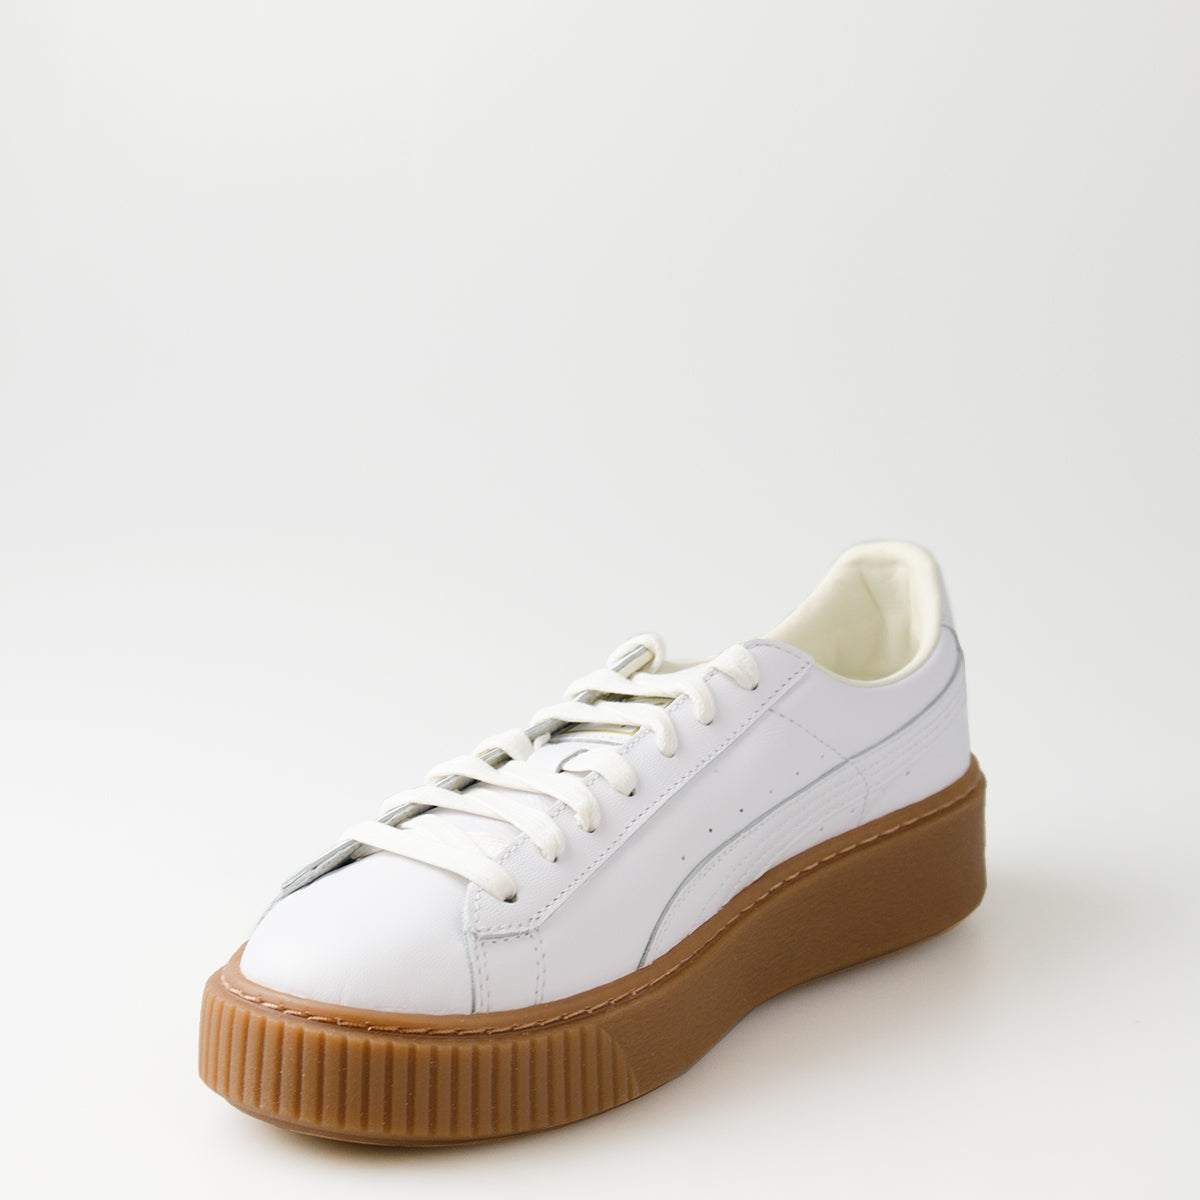 the best attitude 9b9a7 2091c Women's Puma Basket Platform Core Sneakers White / Gum ...